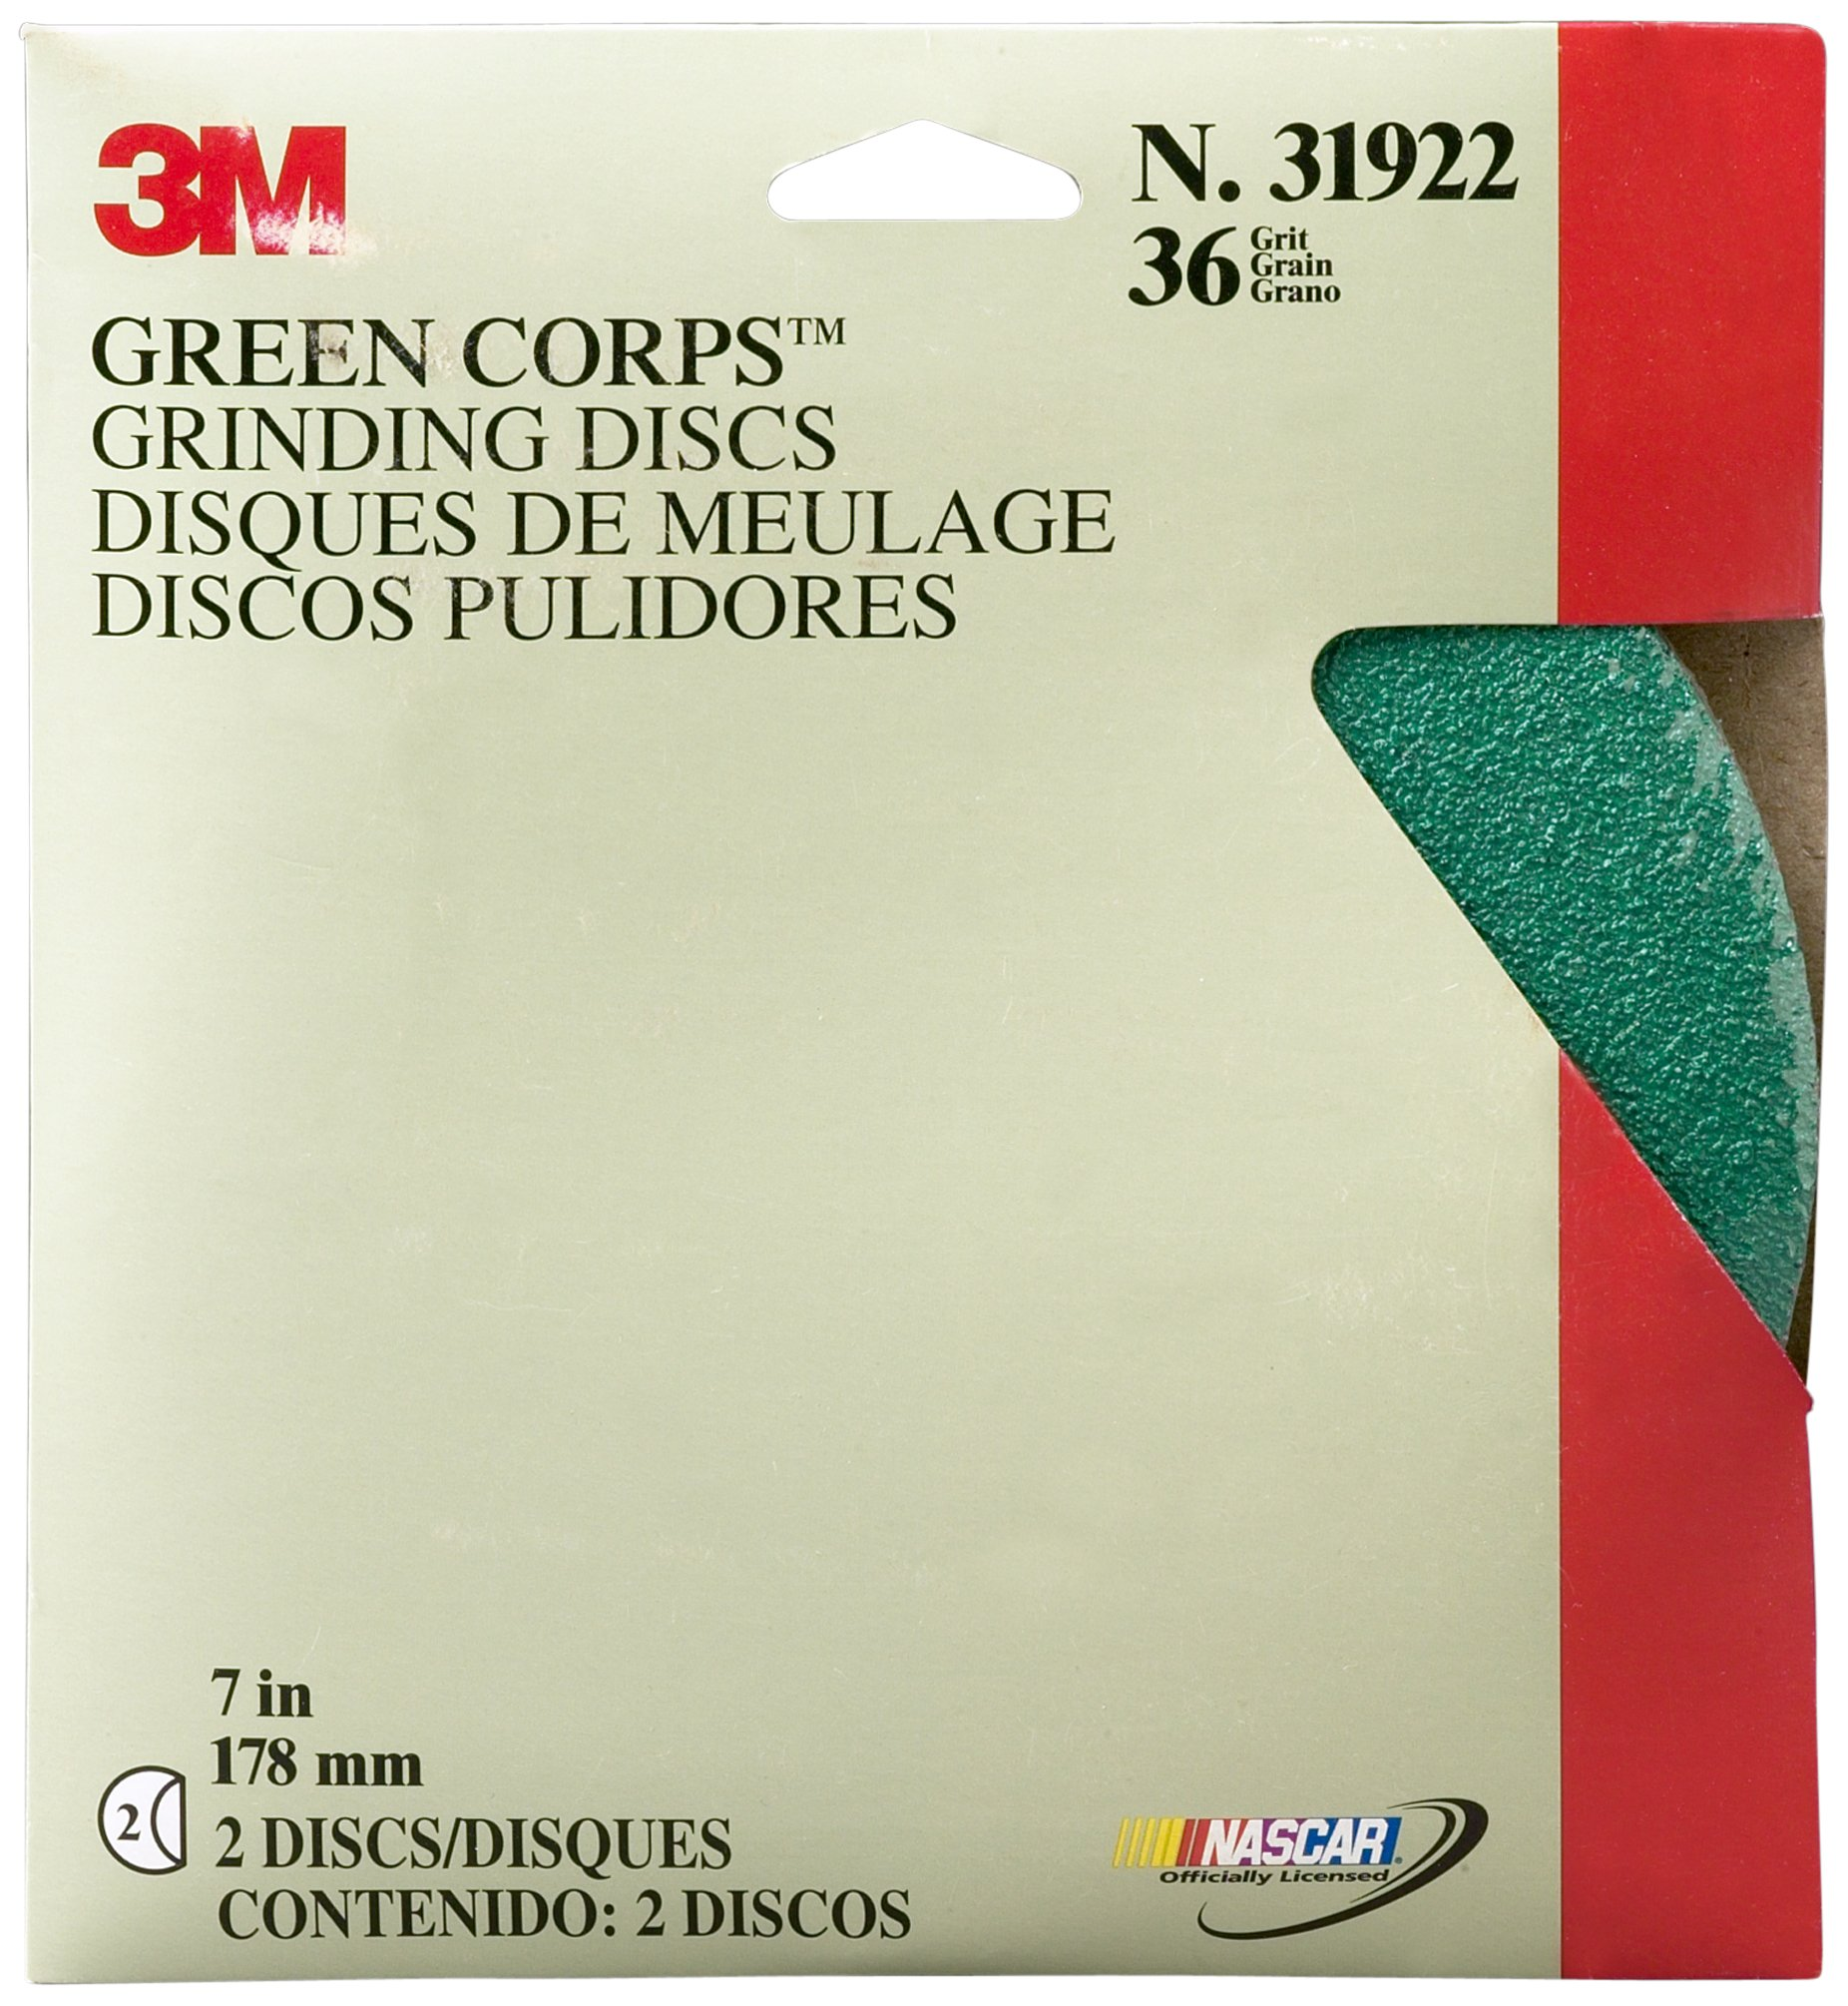 3M 31922 Green Corps 7'' x 7/8'' 36 Grade Grinding Disc (Pack of 10)